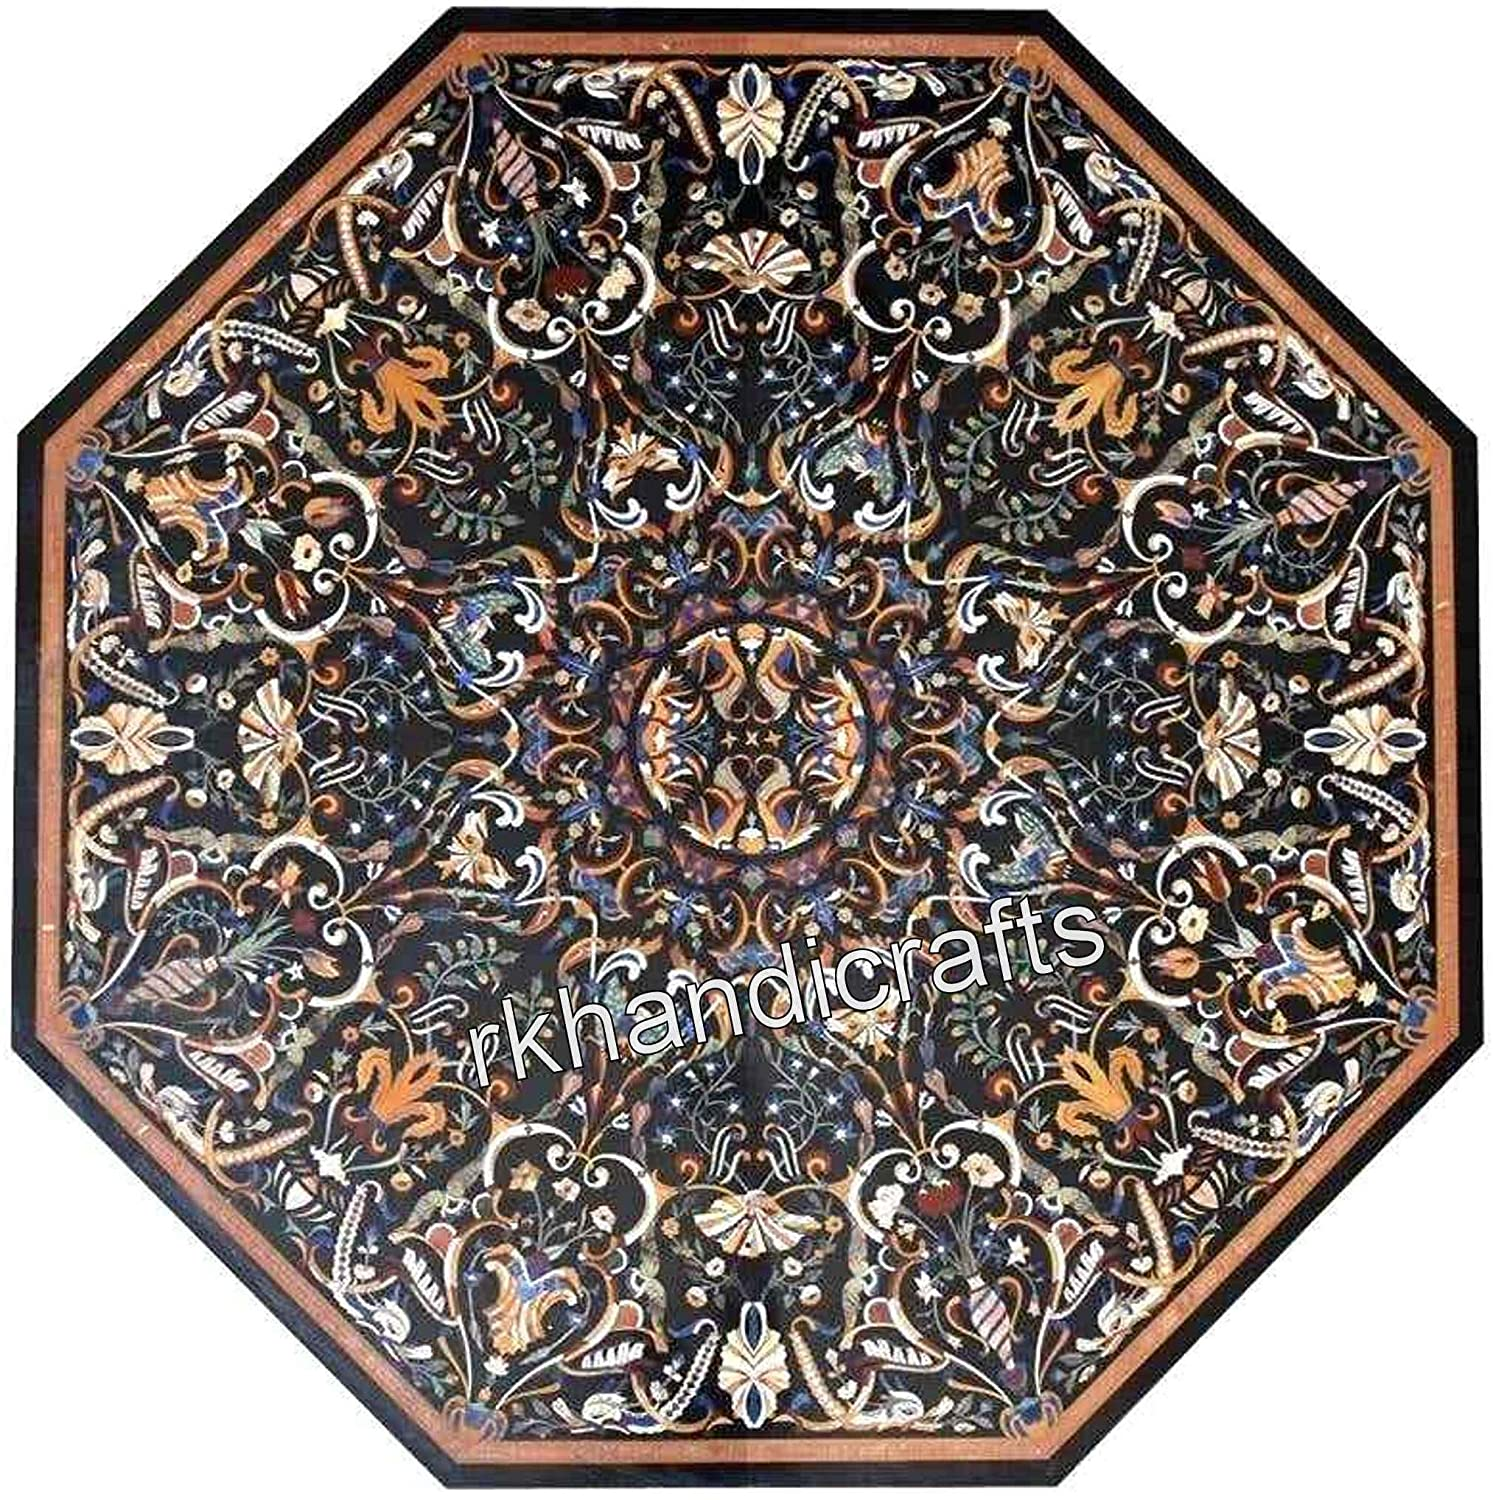 60 x 60 Inches Octagonal Shape Marble Coffee Table Top Handmade Meeting Table with Mosaic Art